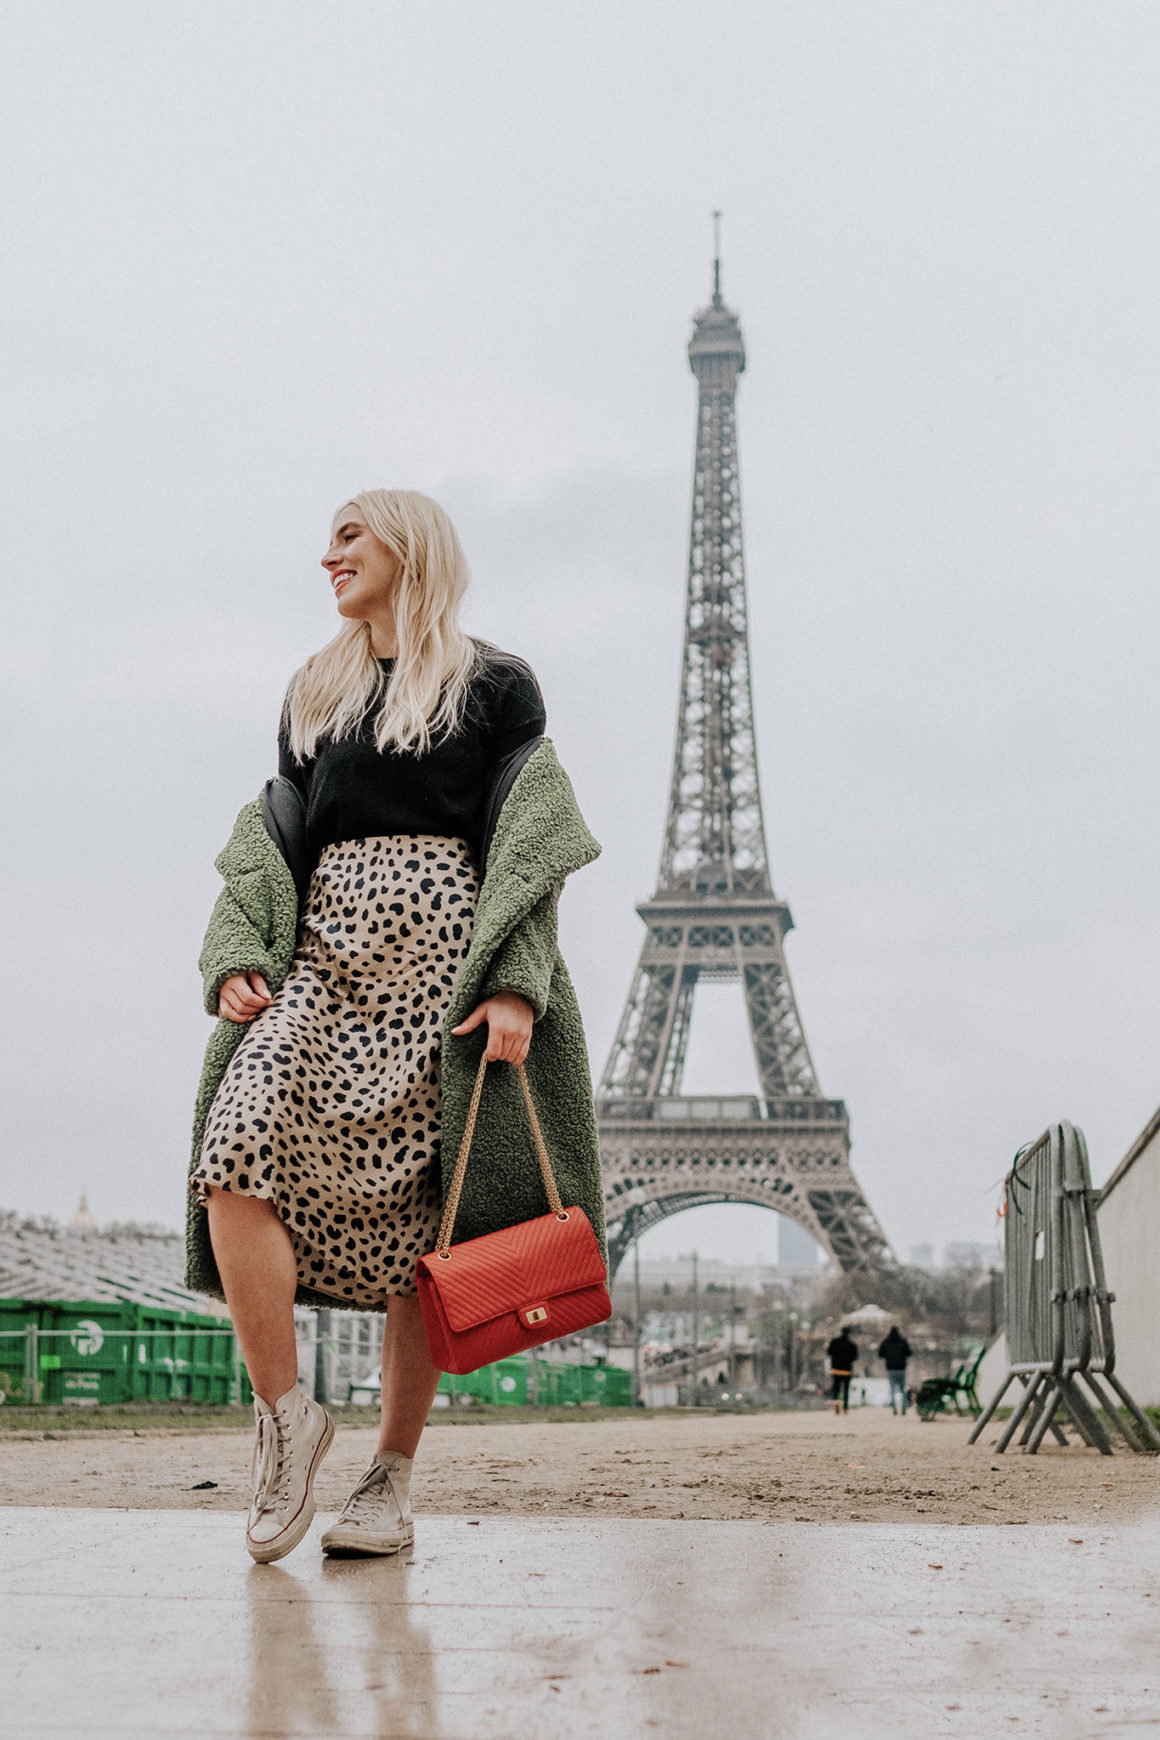 THE EUROPE DIARIES: QUICK GUIDE TO PARIS